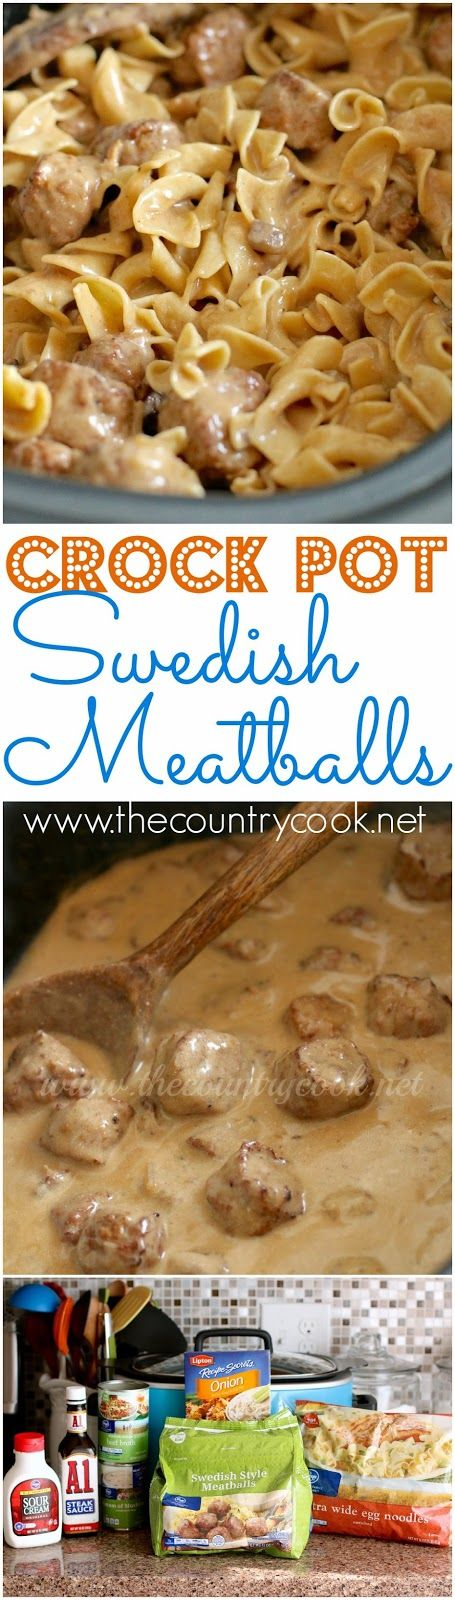 Crock Pot Swedish Meatballs - Similar to beef stroganoff but with meatballs! So simple to make using frozen meatballs, egg noodles, and a creamy sauce! | The Country Cook